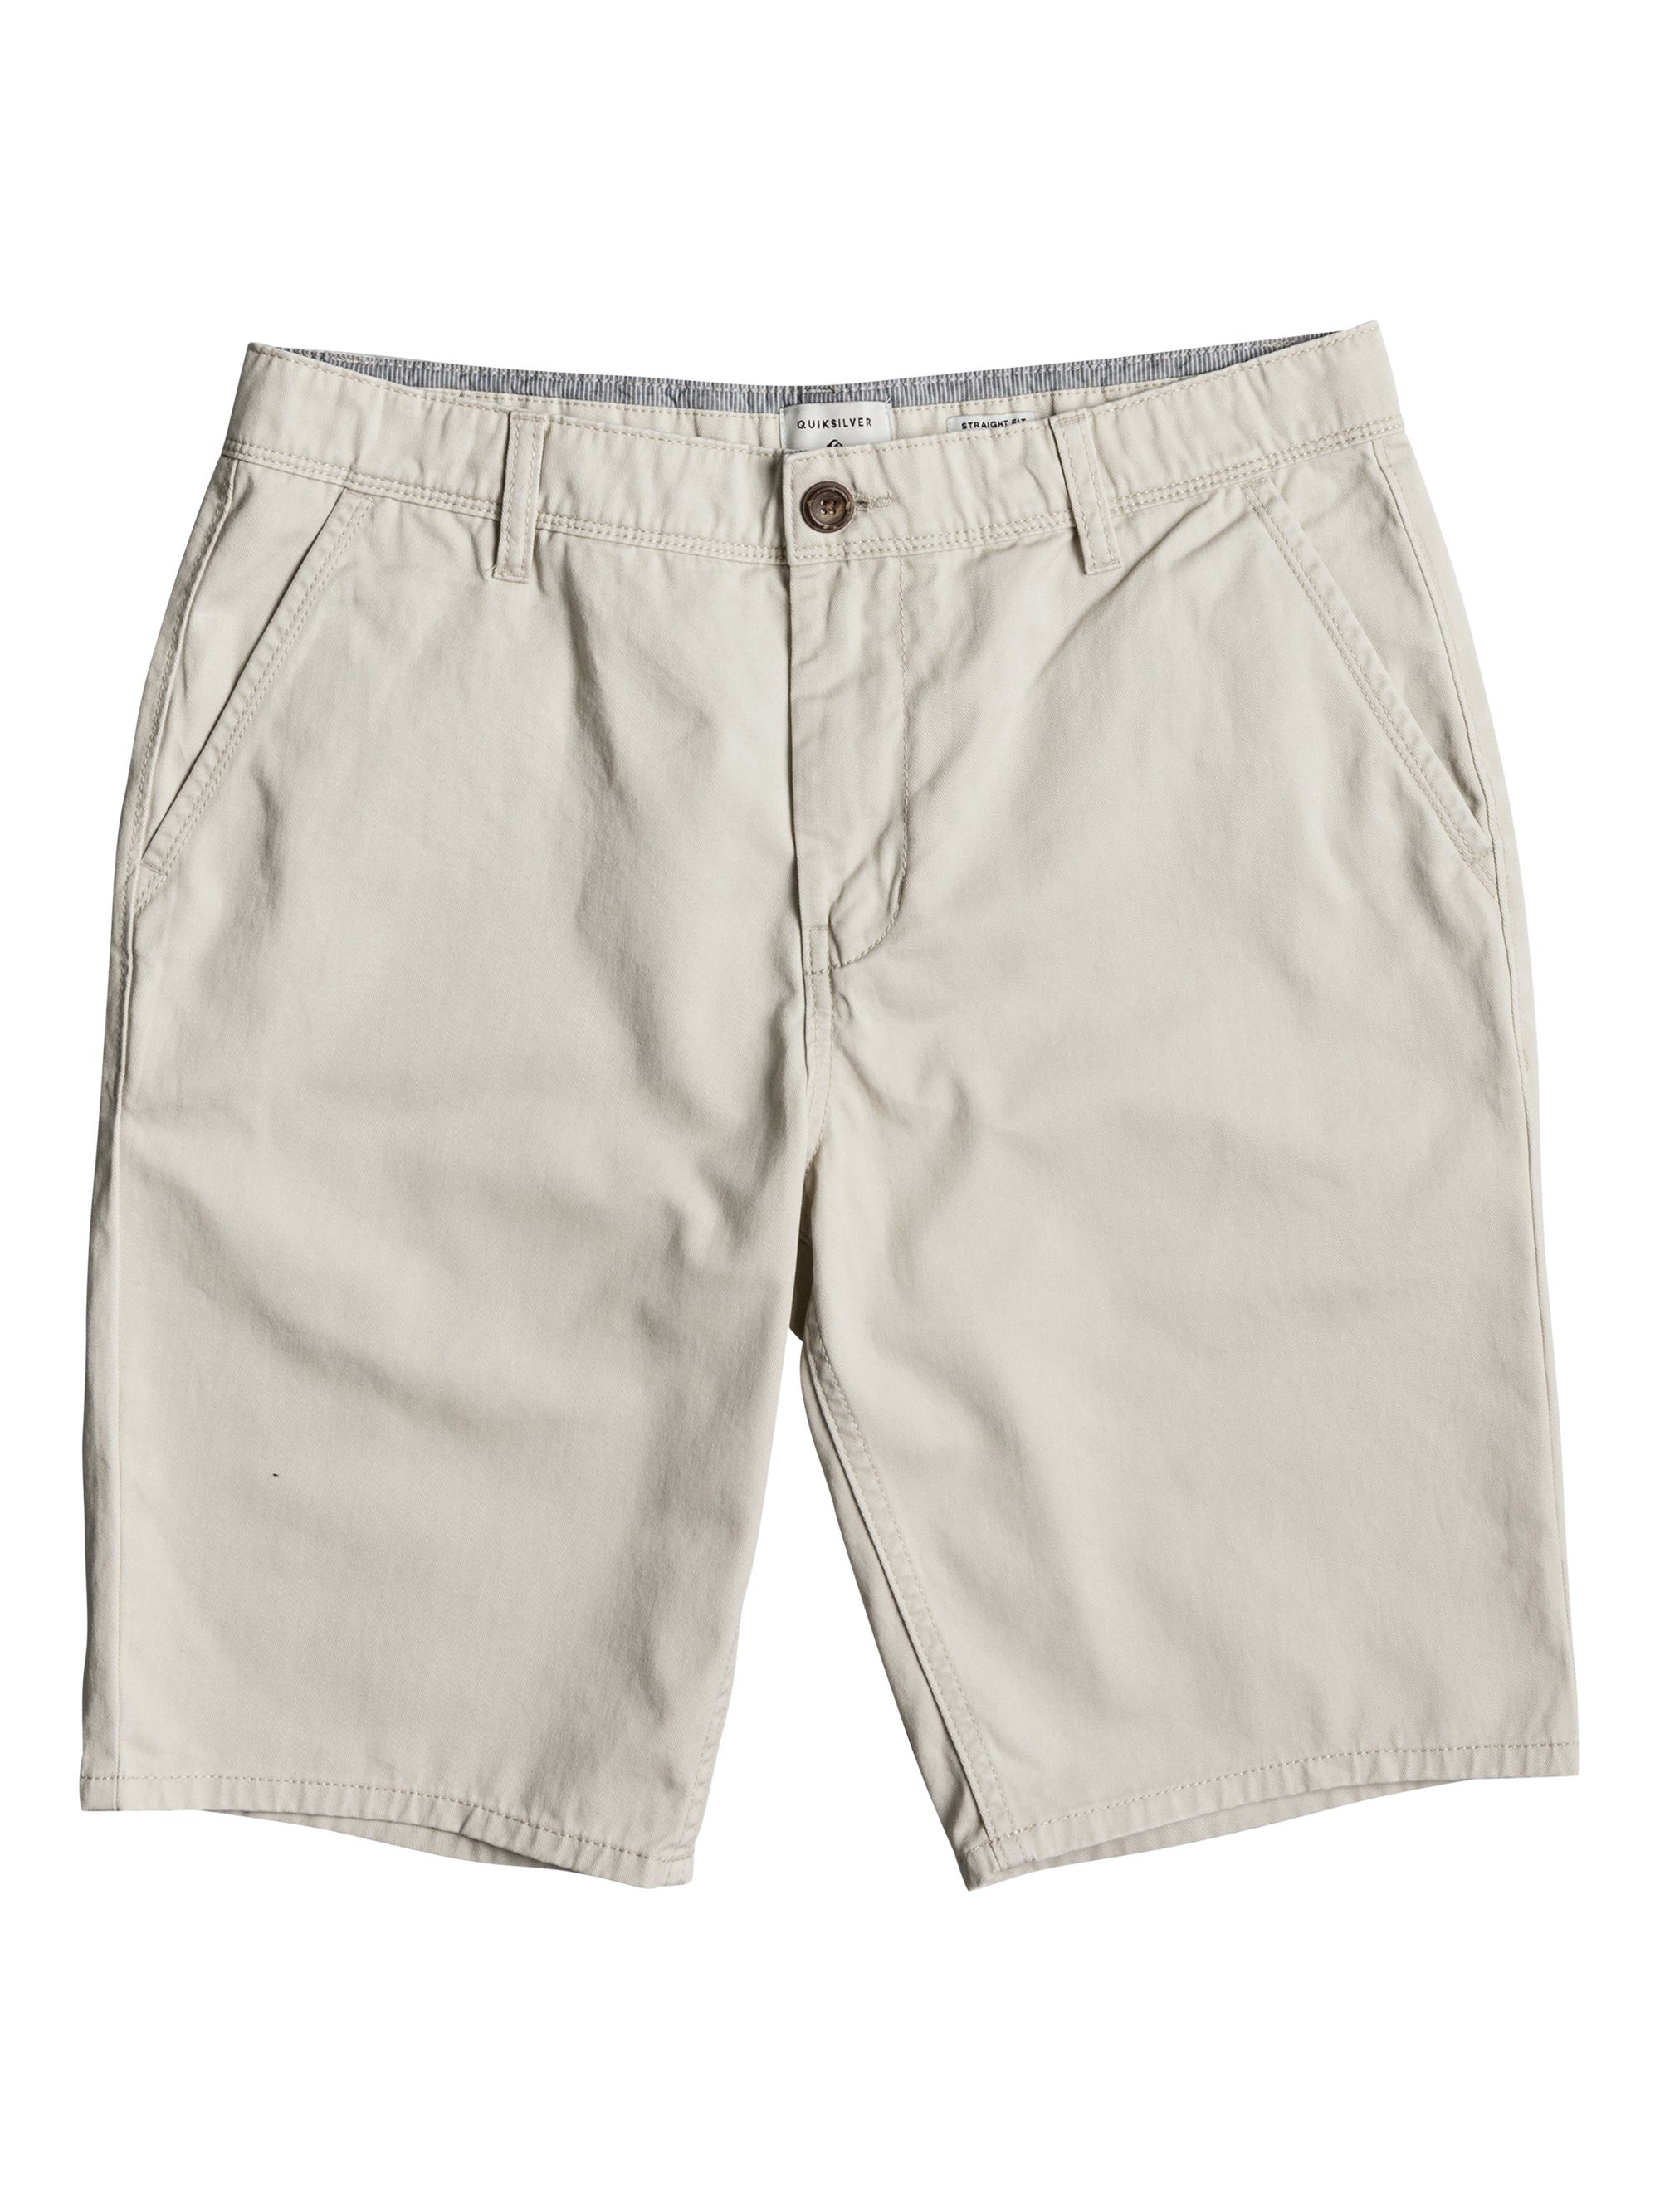 Click to view product details and reviews for Mens Quiksilver Everyday Light Chino Shorts White.